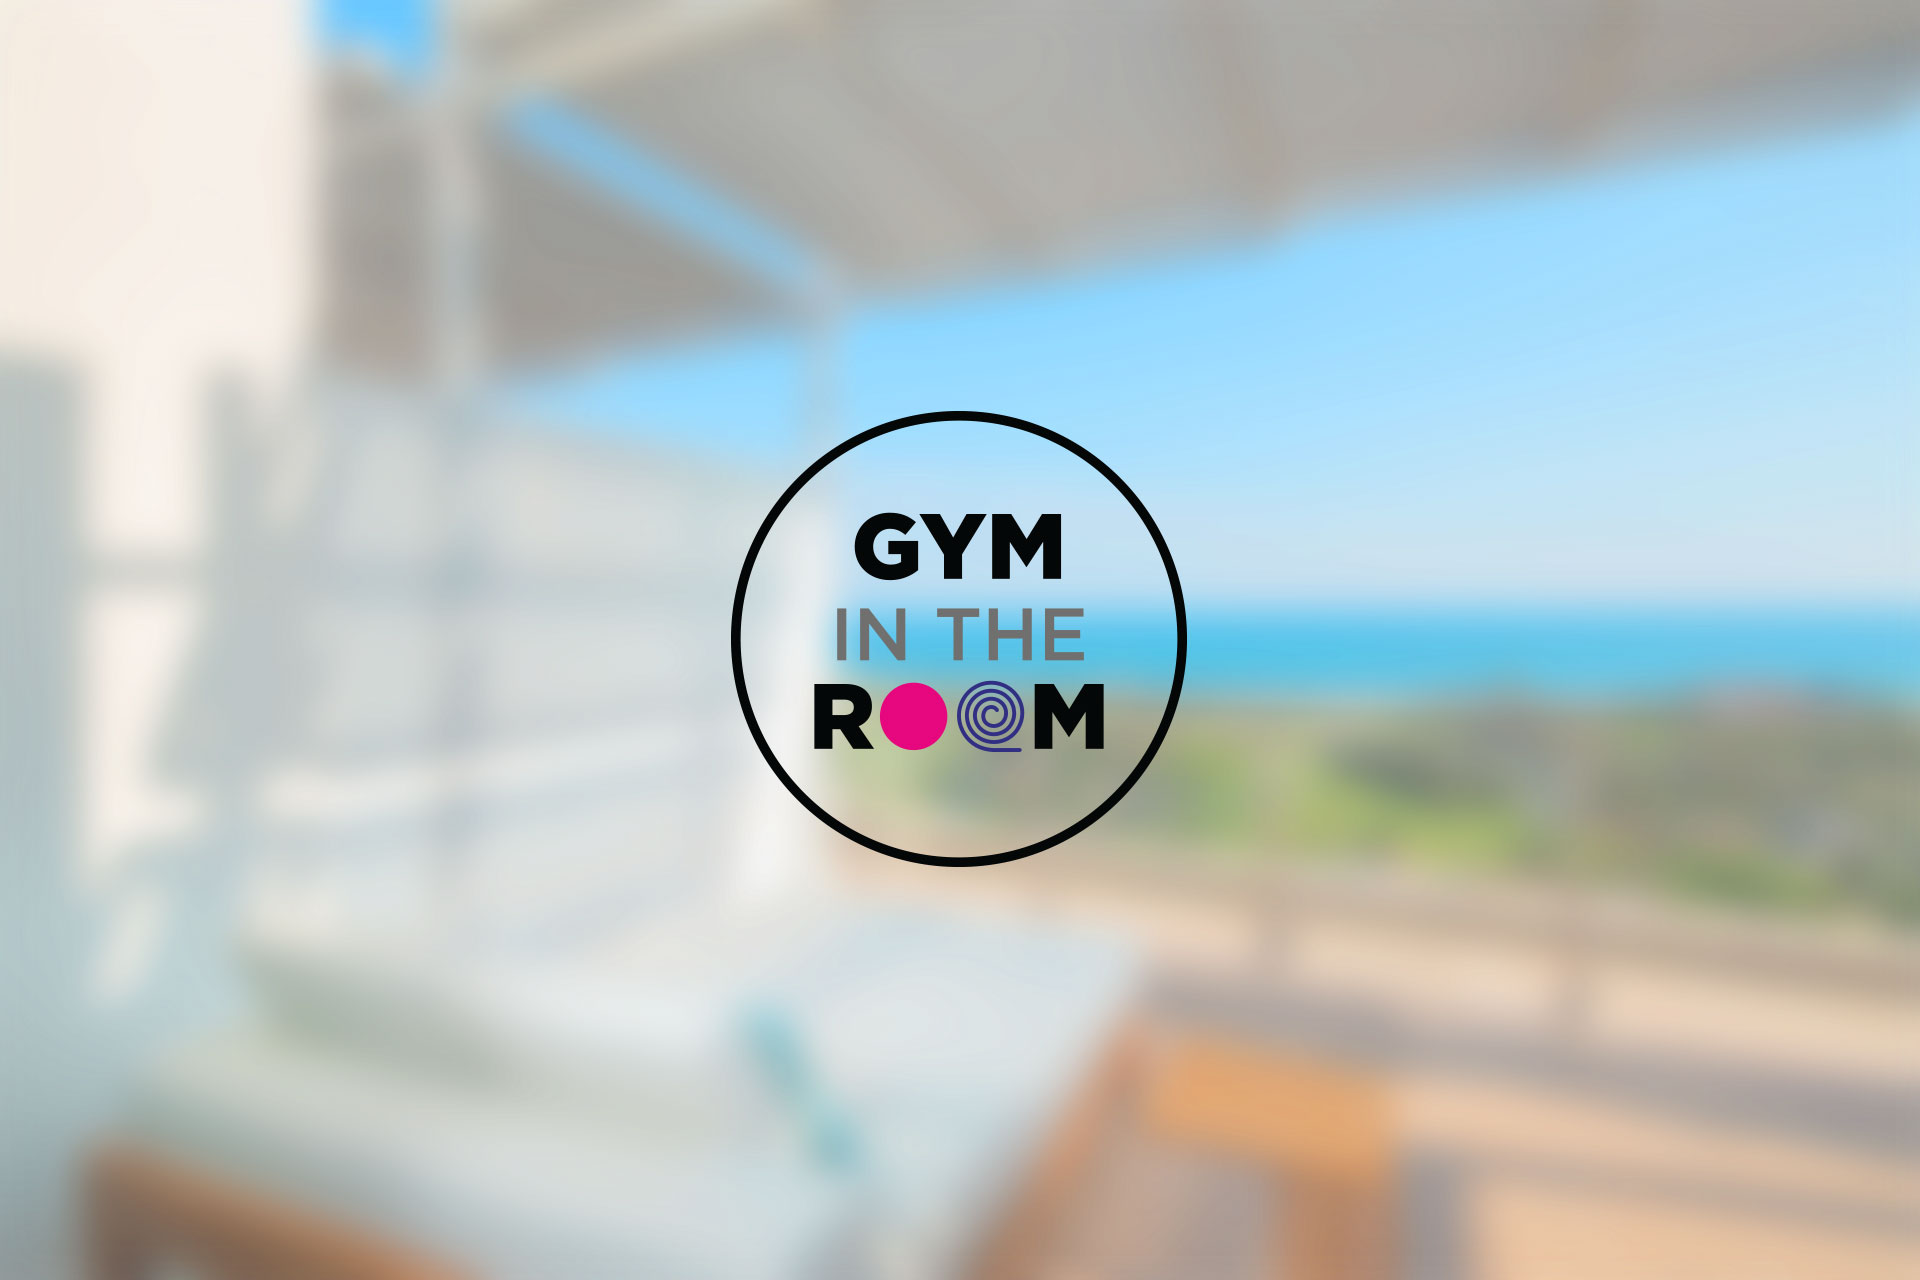 Gym in the Room